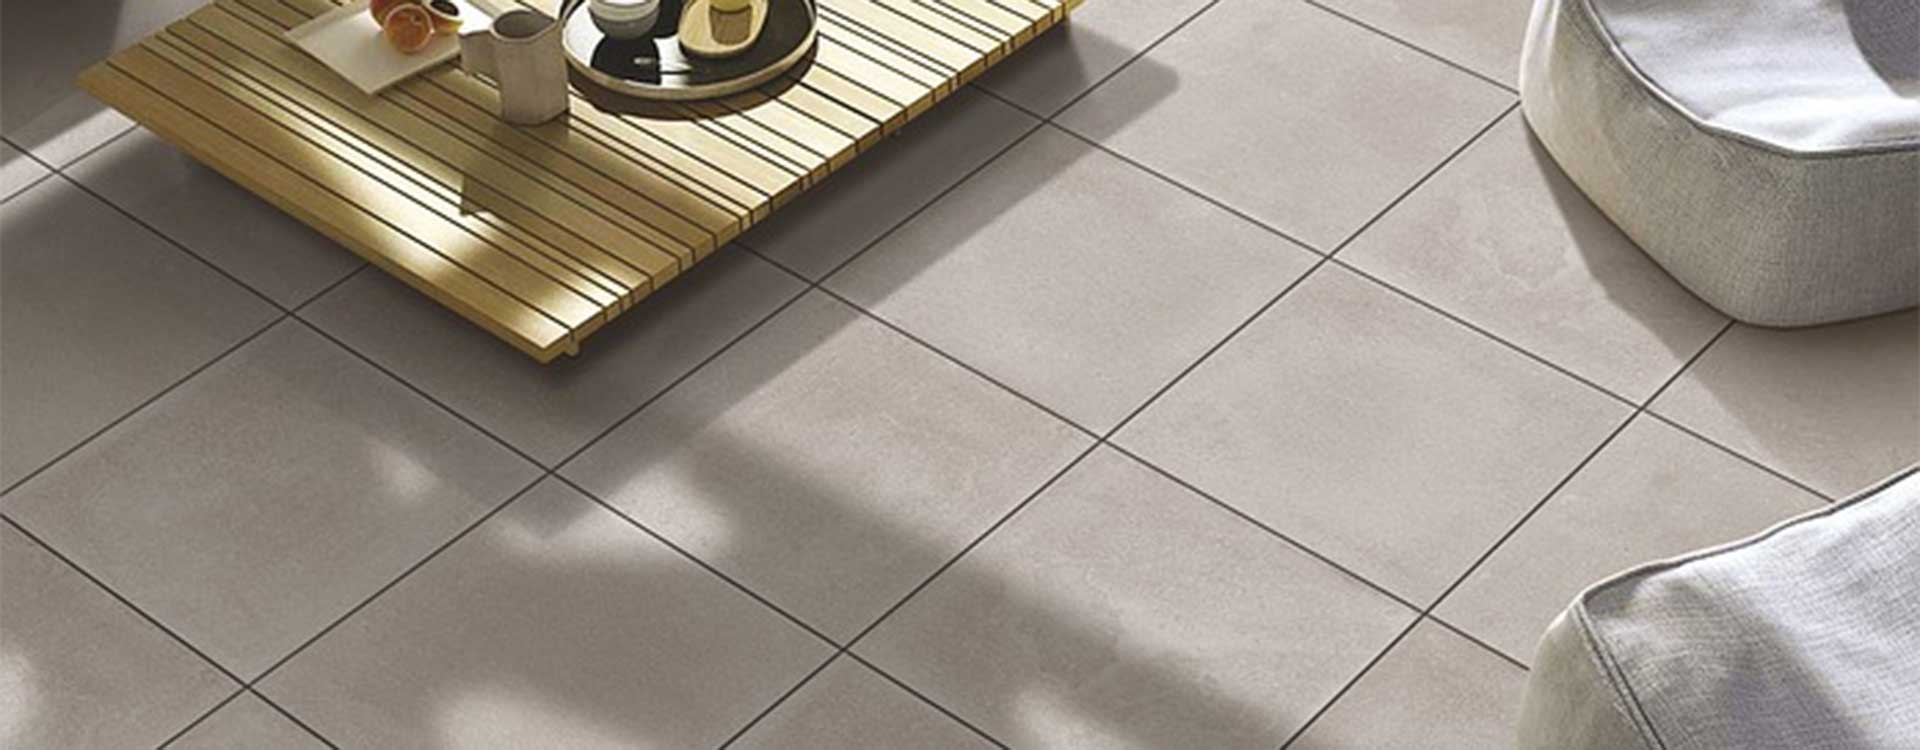 how to remove grout haze from porcelain tile